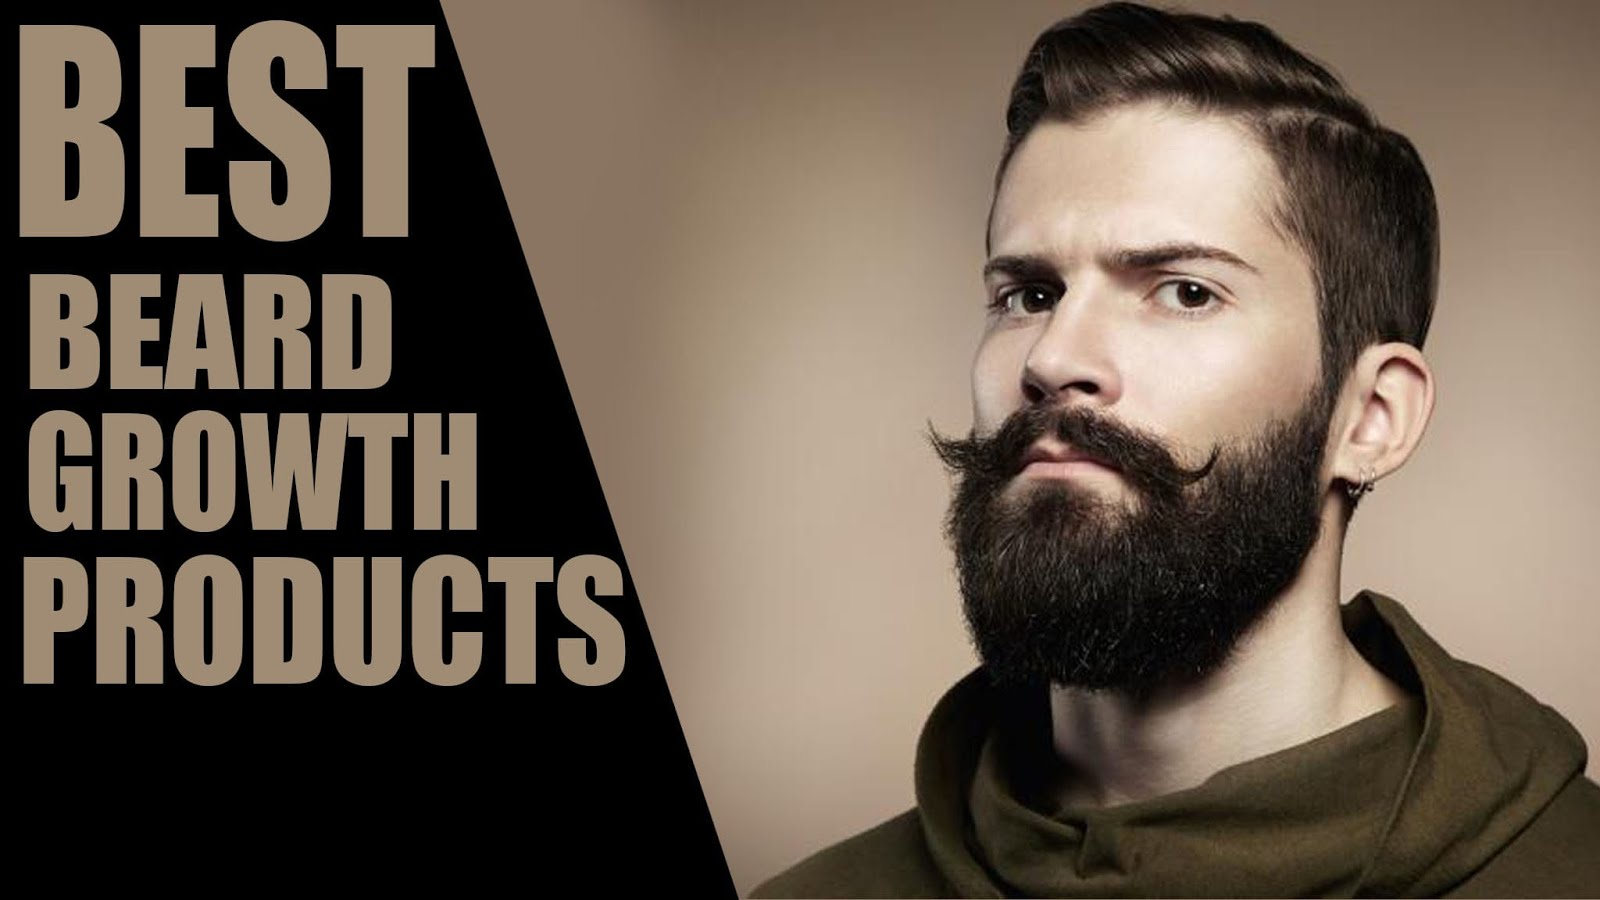 6 BEST BEARD GROWTH PRODUCTS TO GET IN 2018 - hair problems